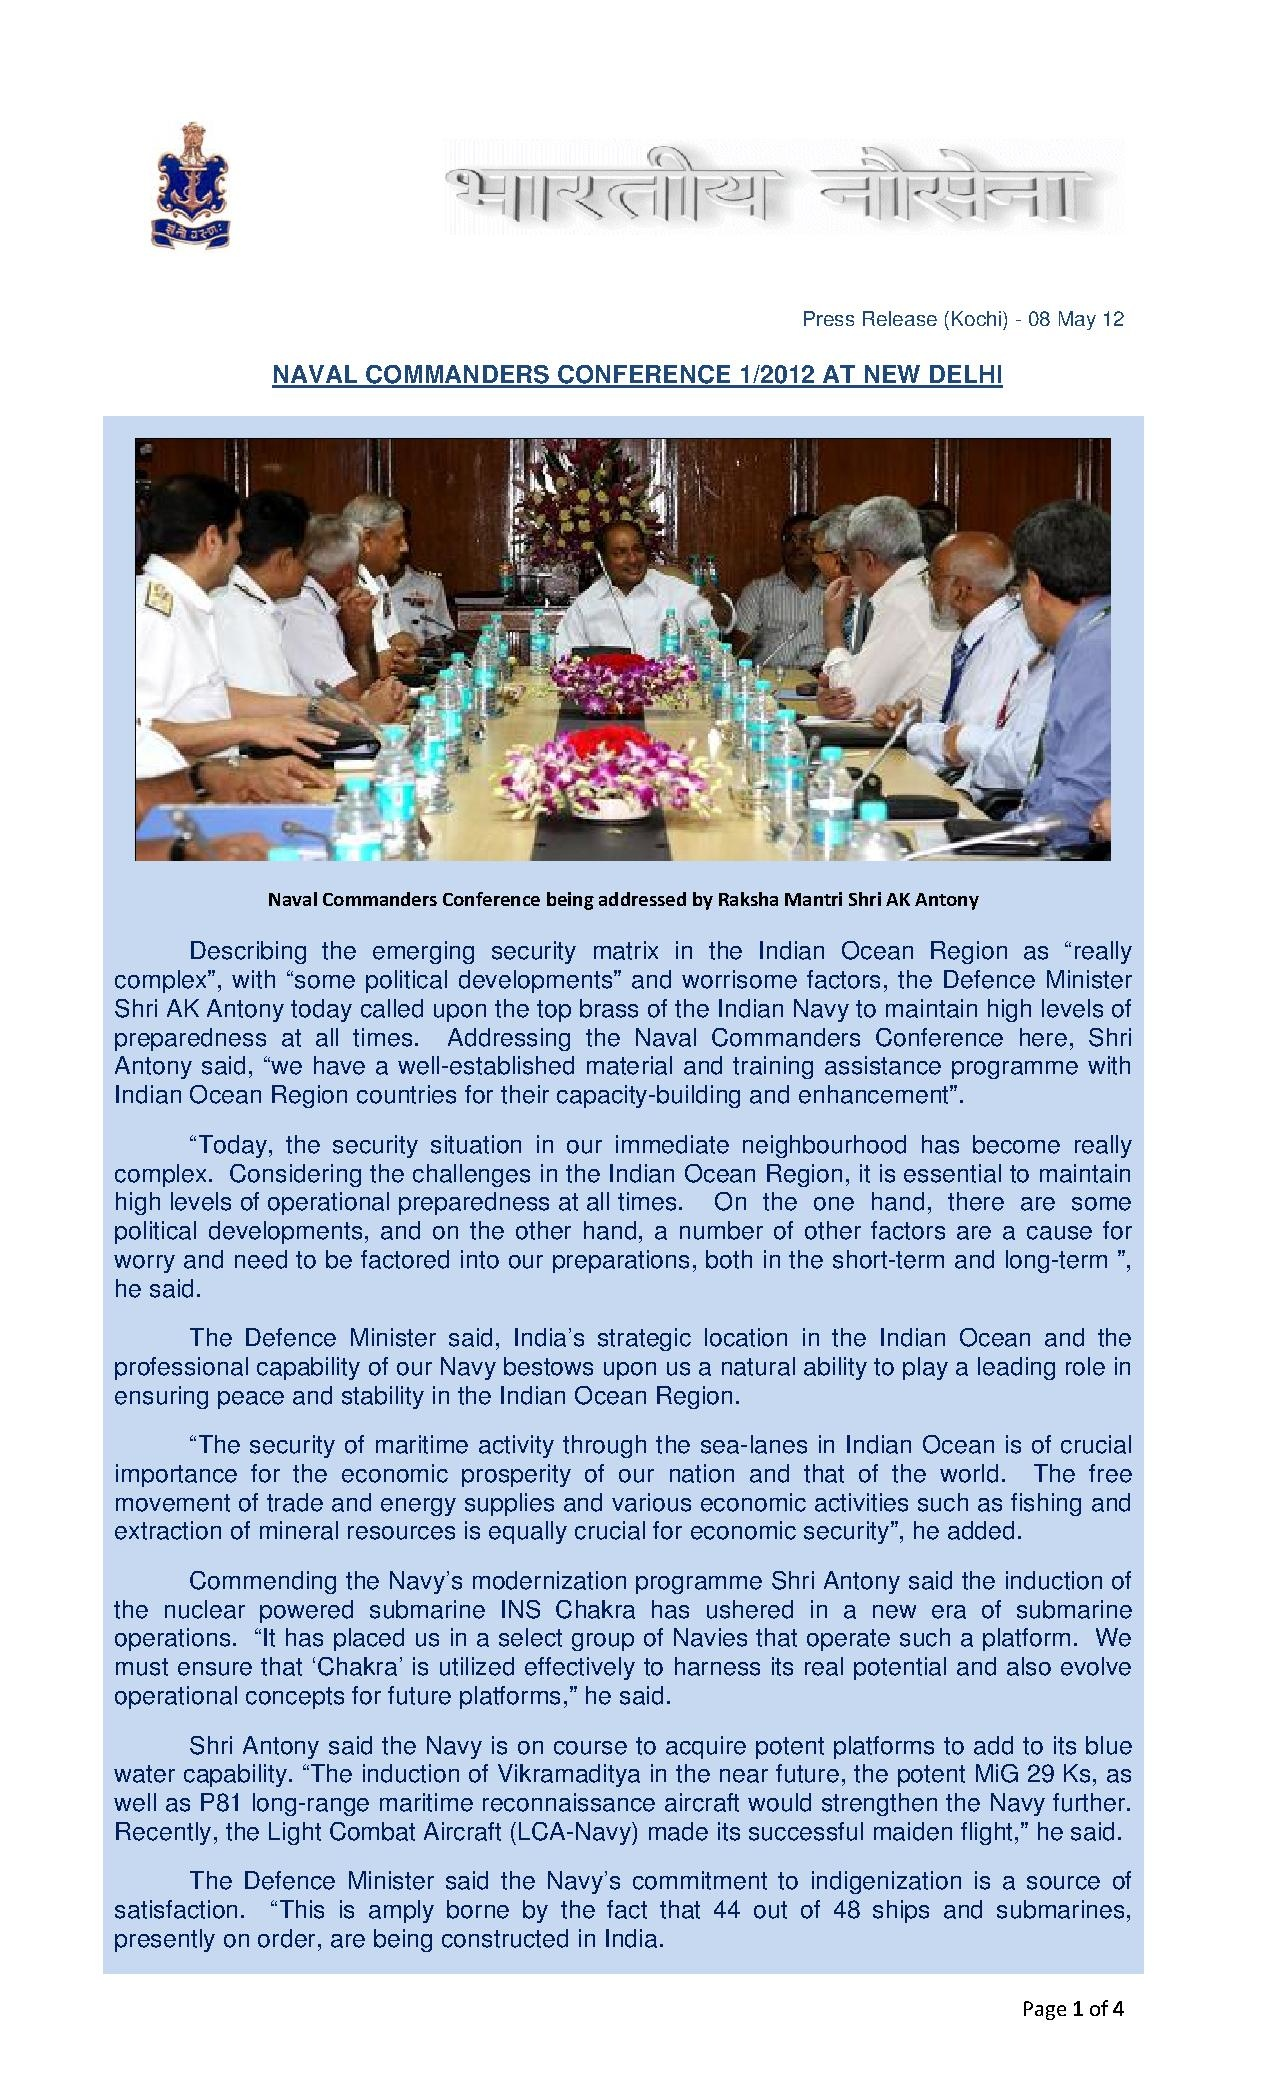 File:Defence Minister AK Antony inaugurates Naval Commanders